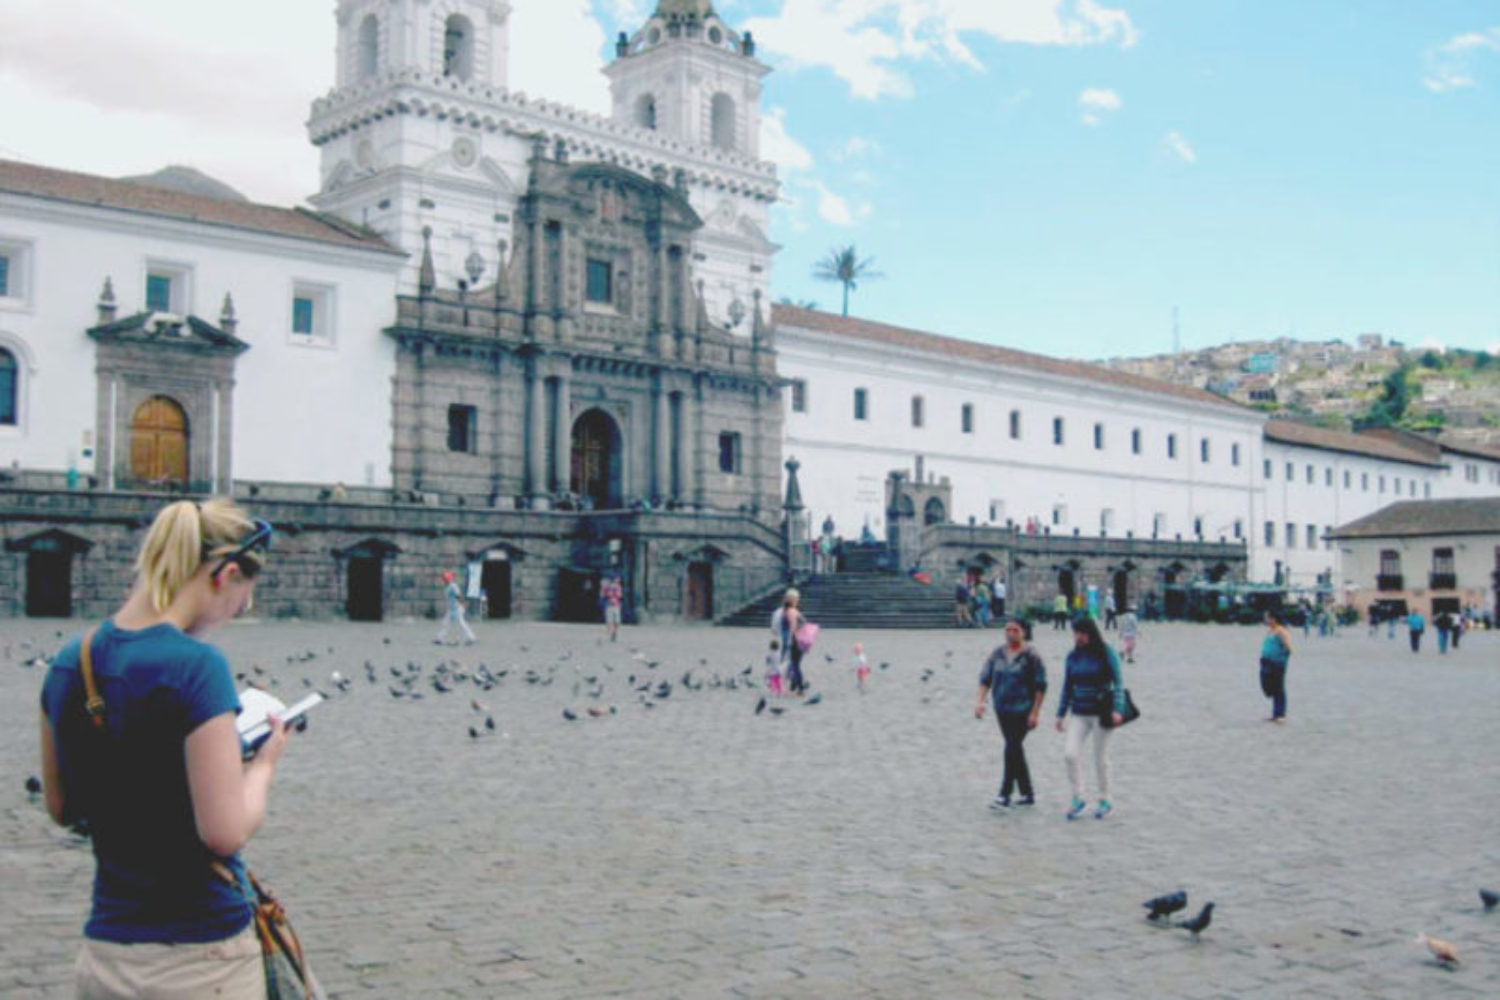 the Santo domingo square in Quito is full of life